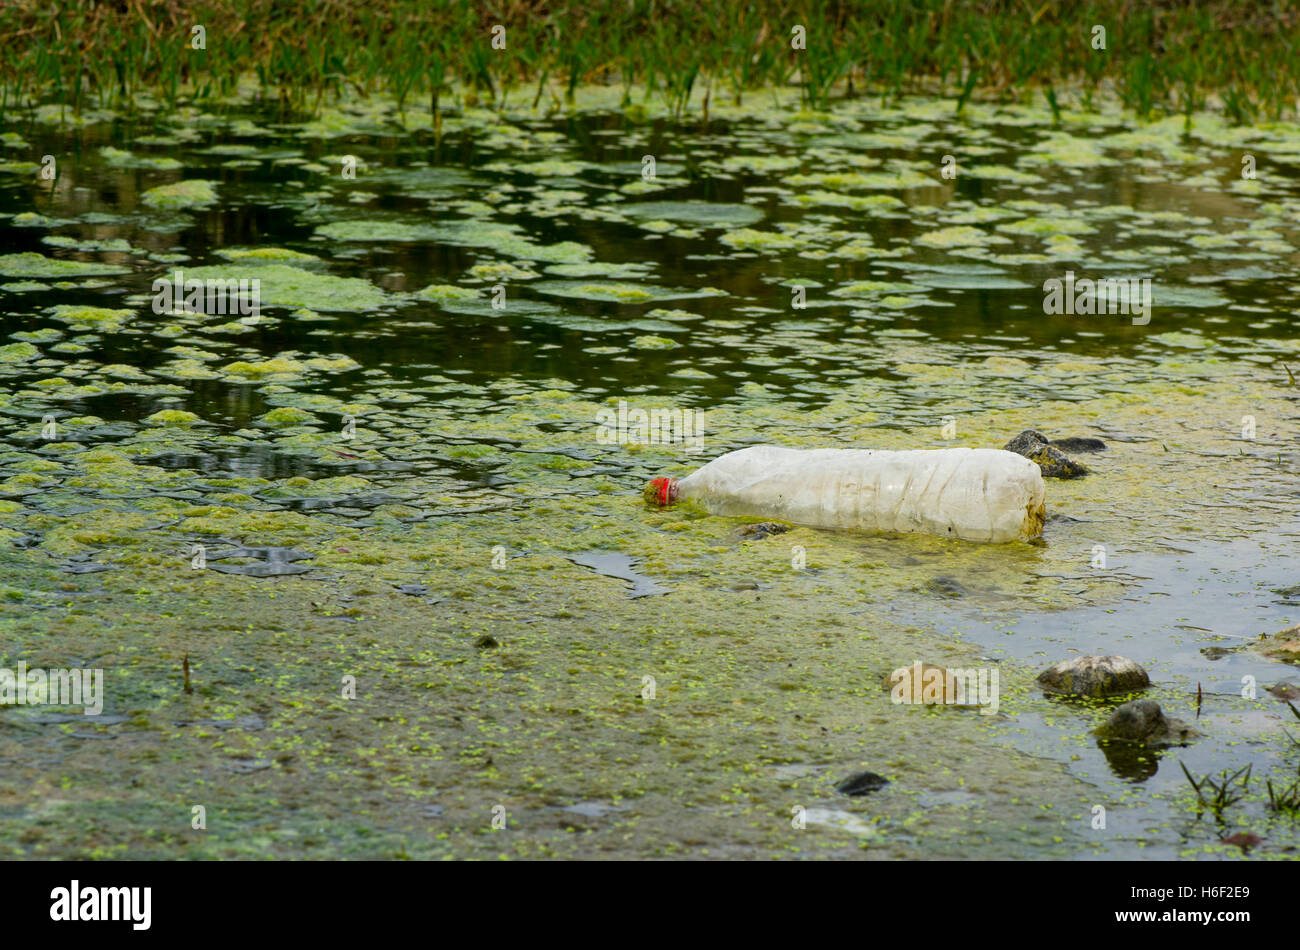 River pollution, plastic bottle floating in between duckweed, Spain. - Stock Image